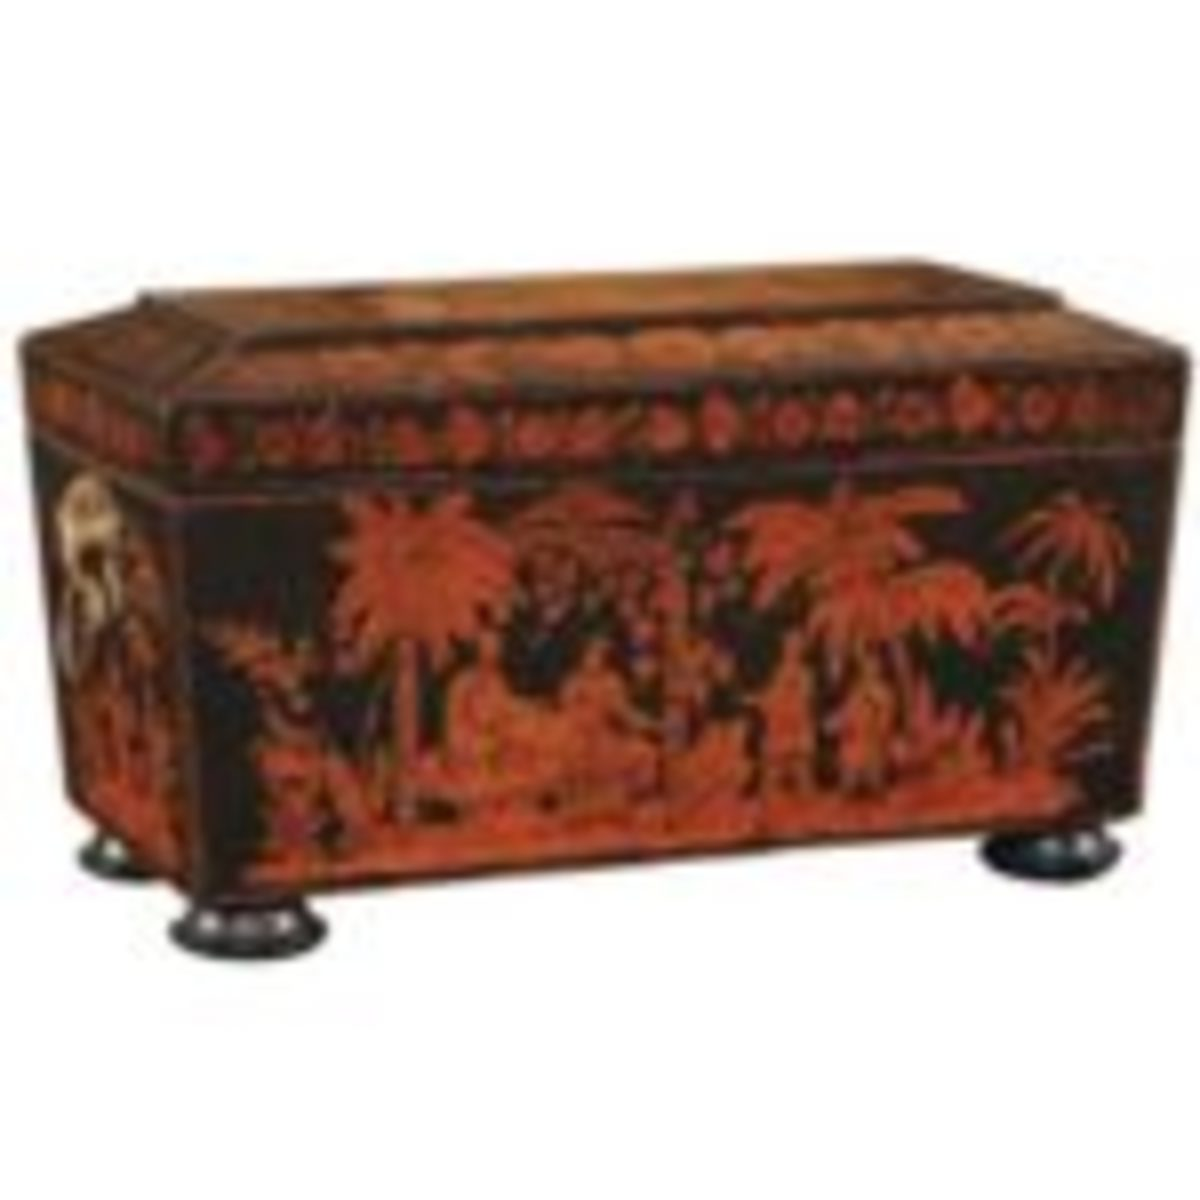 """English ebonized wooden penwork tea caddy featuring chinoiserie scenes and two tea compartments flanking central cup holder, 19th century, 7"""" x 12 1/4"""" x 6 1/4"""", $2,150. Available at www.1stdibs.com. Courtesy of www.1stdibs.com"""